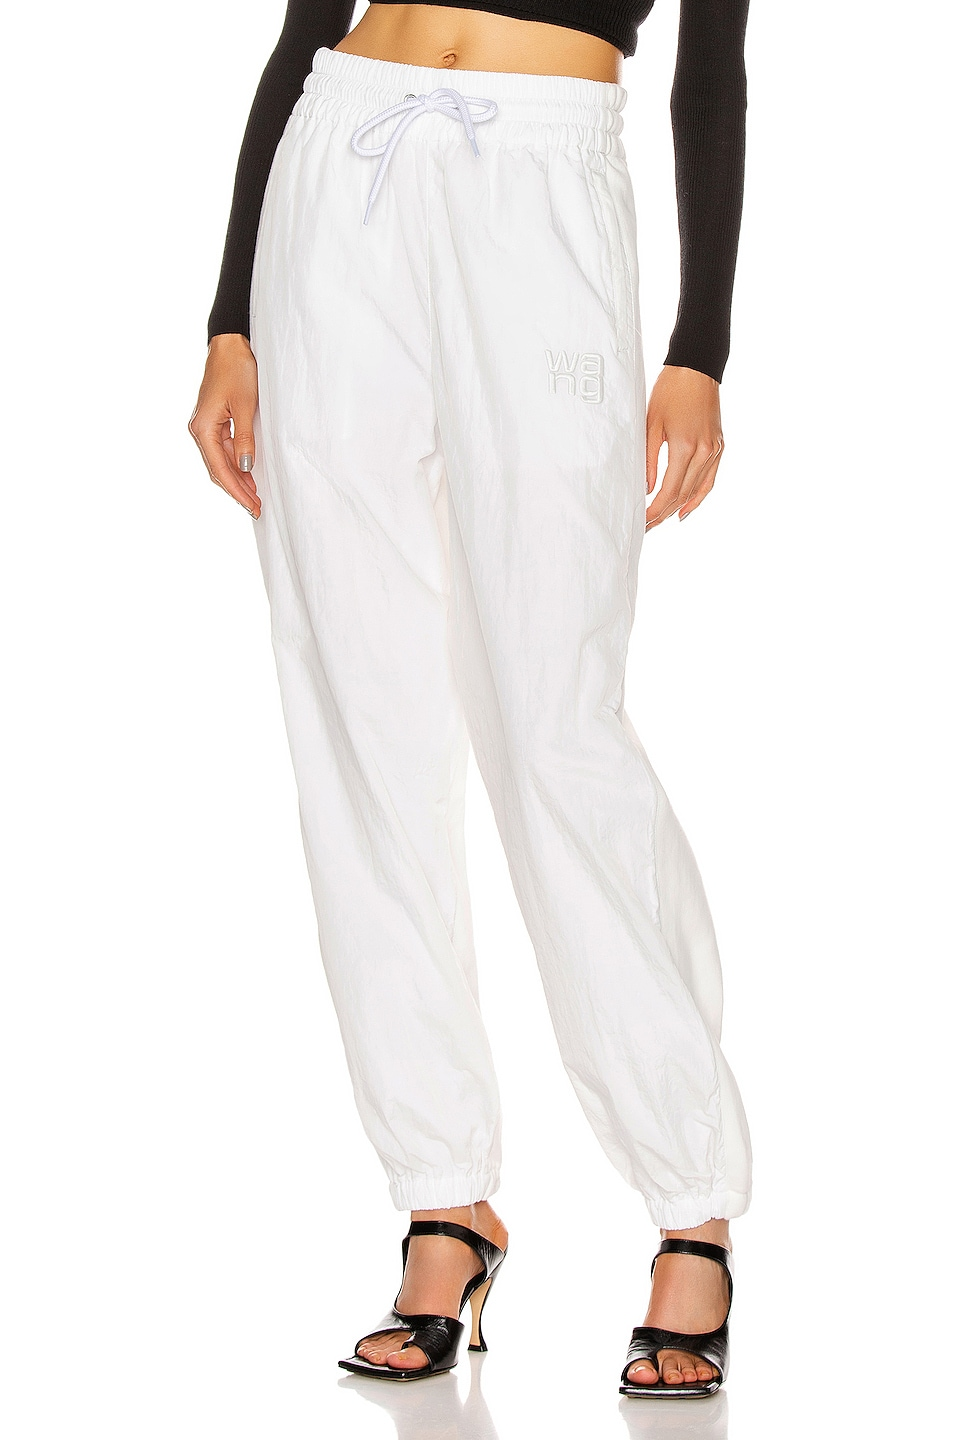 Image 1 of T by Alexander Wang Raised Logo Embroidery Terry Hybrid Pant in White